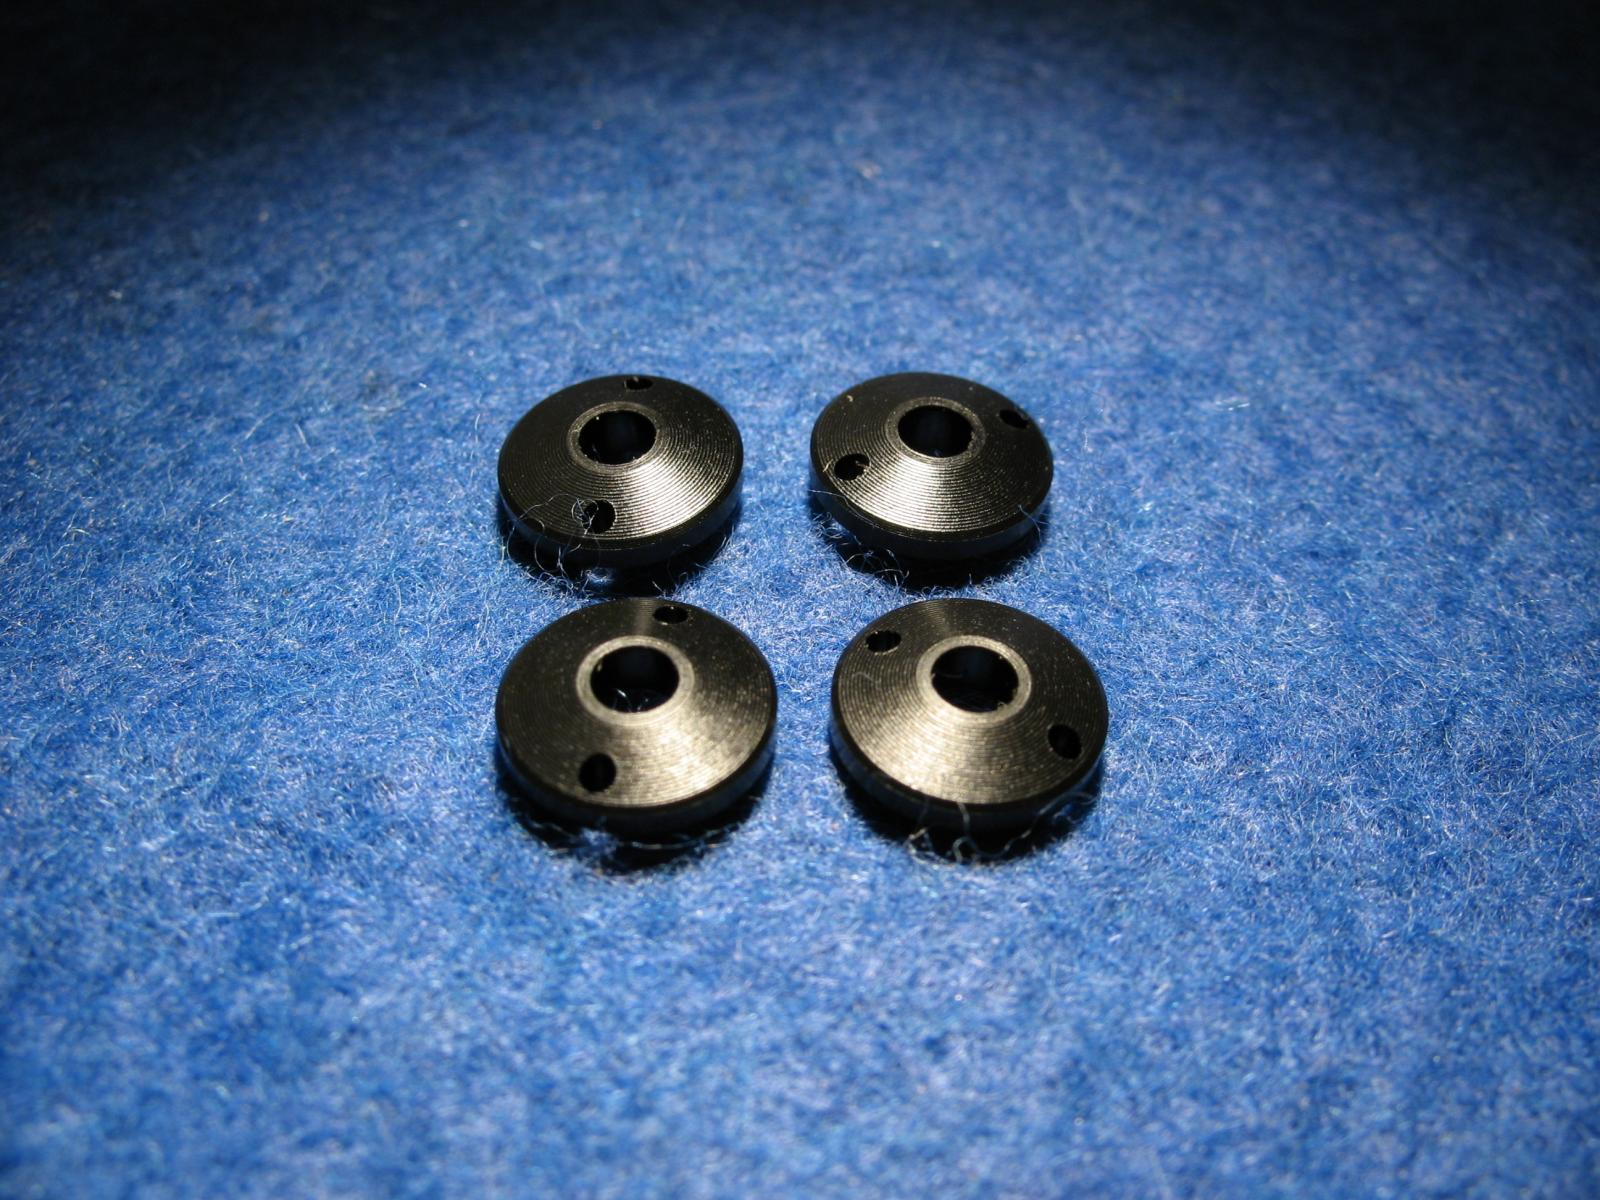 Magic Pistons Big Bore 5x1.3 pistons (pr.)